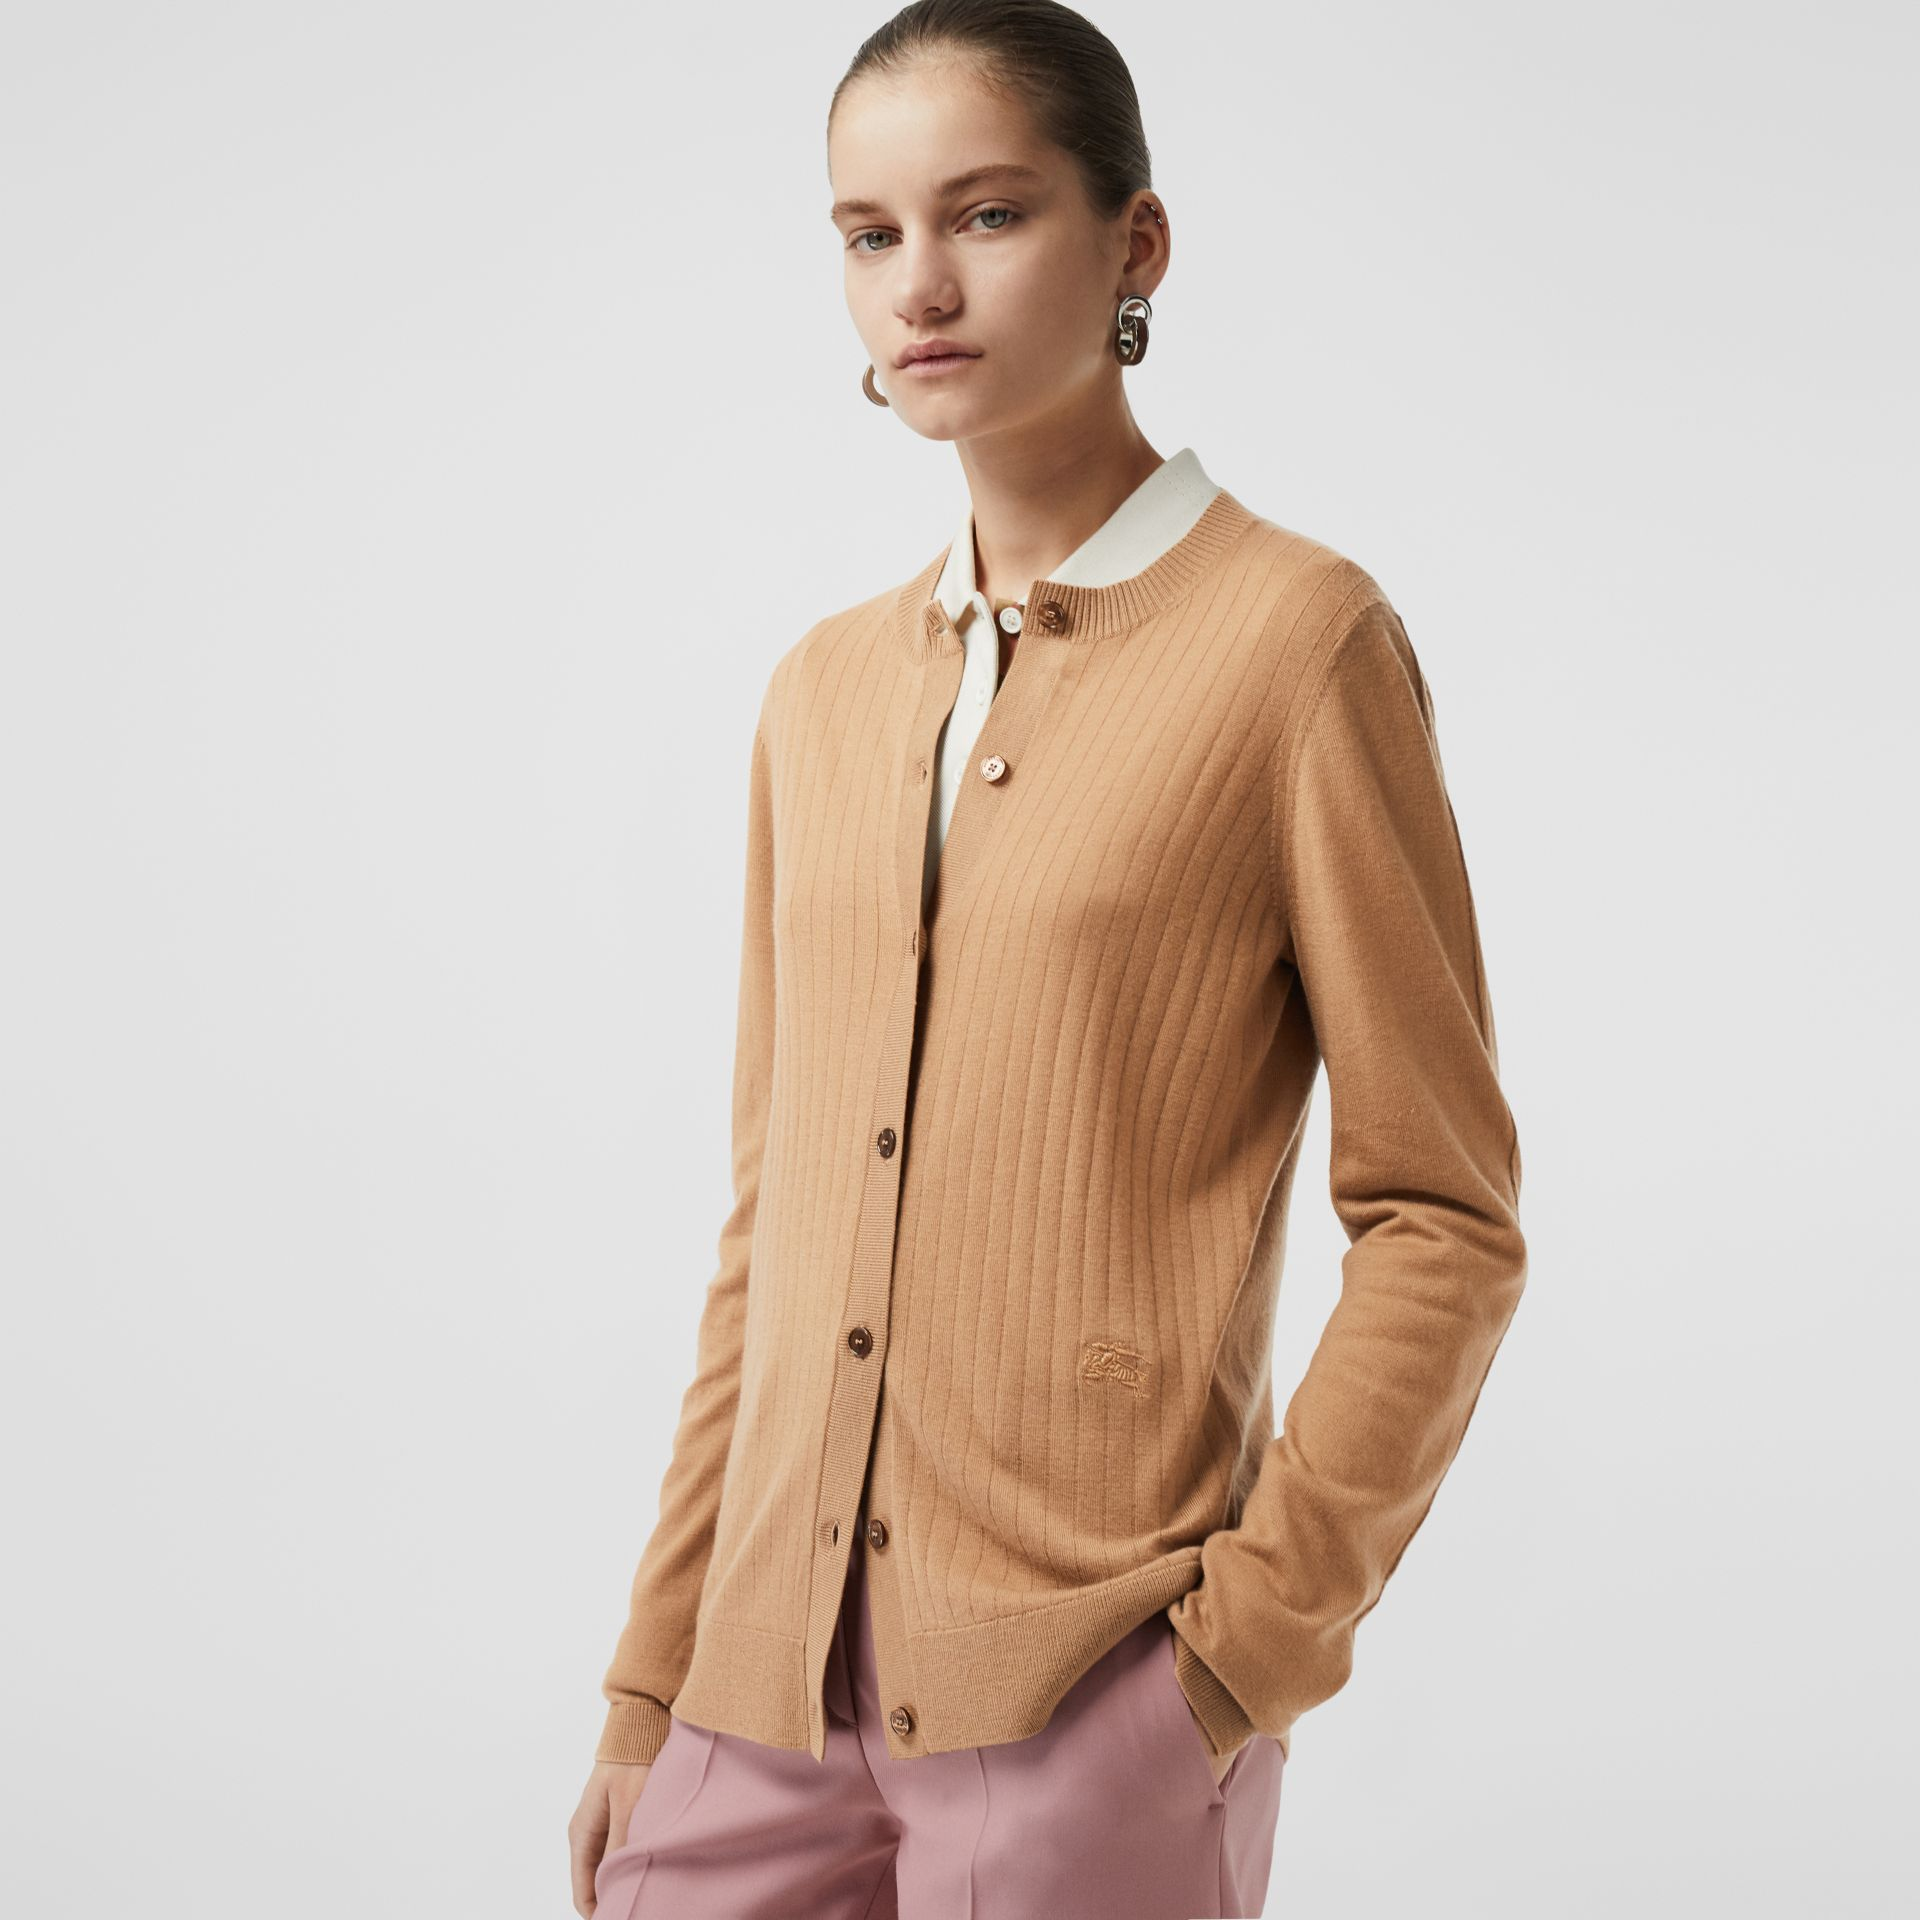 Rib Knit Cashmere Cardigan in Camel - Women | Burberry United Kingdom - gallery image 4